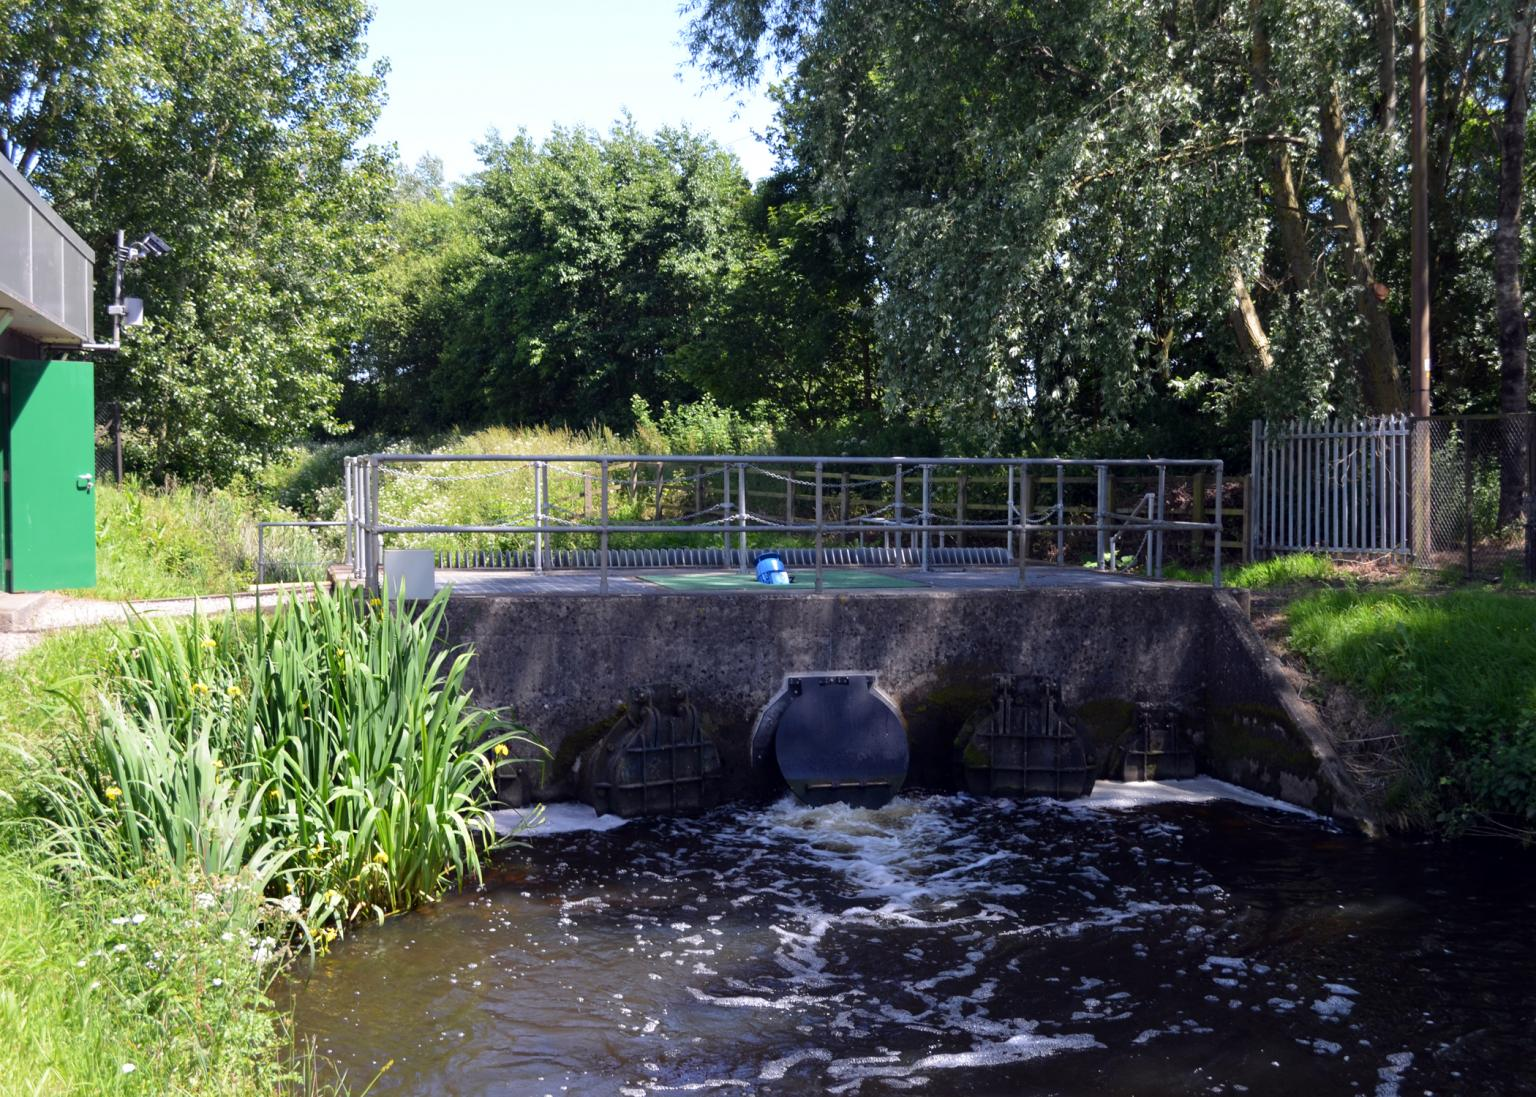 NRW commissioned ECS to install a new, more efficient, fully compact, Archimedes screw pump at a site near Newport, Gwent